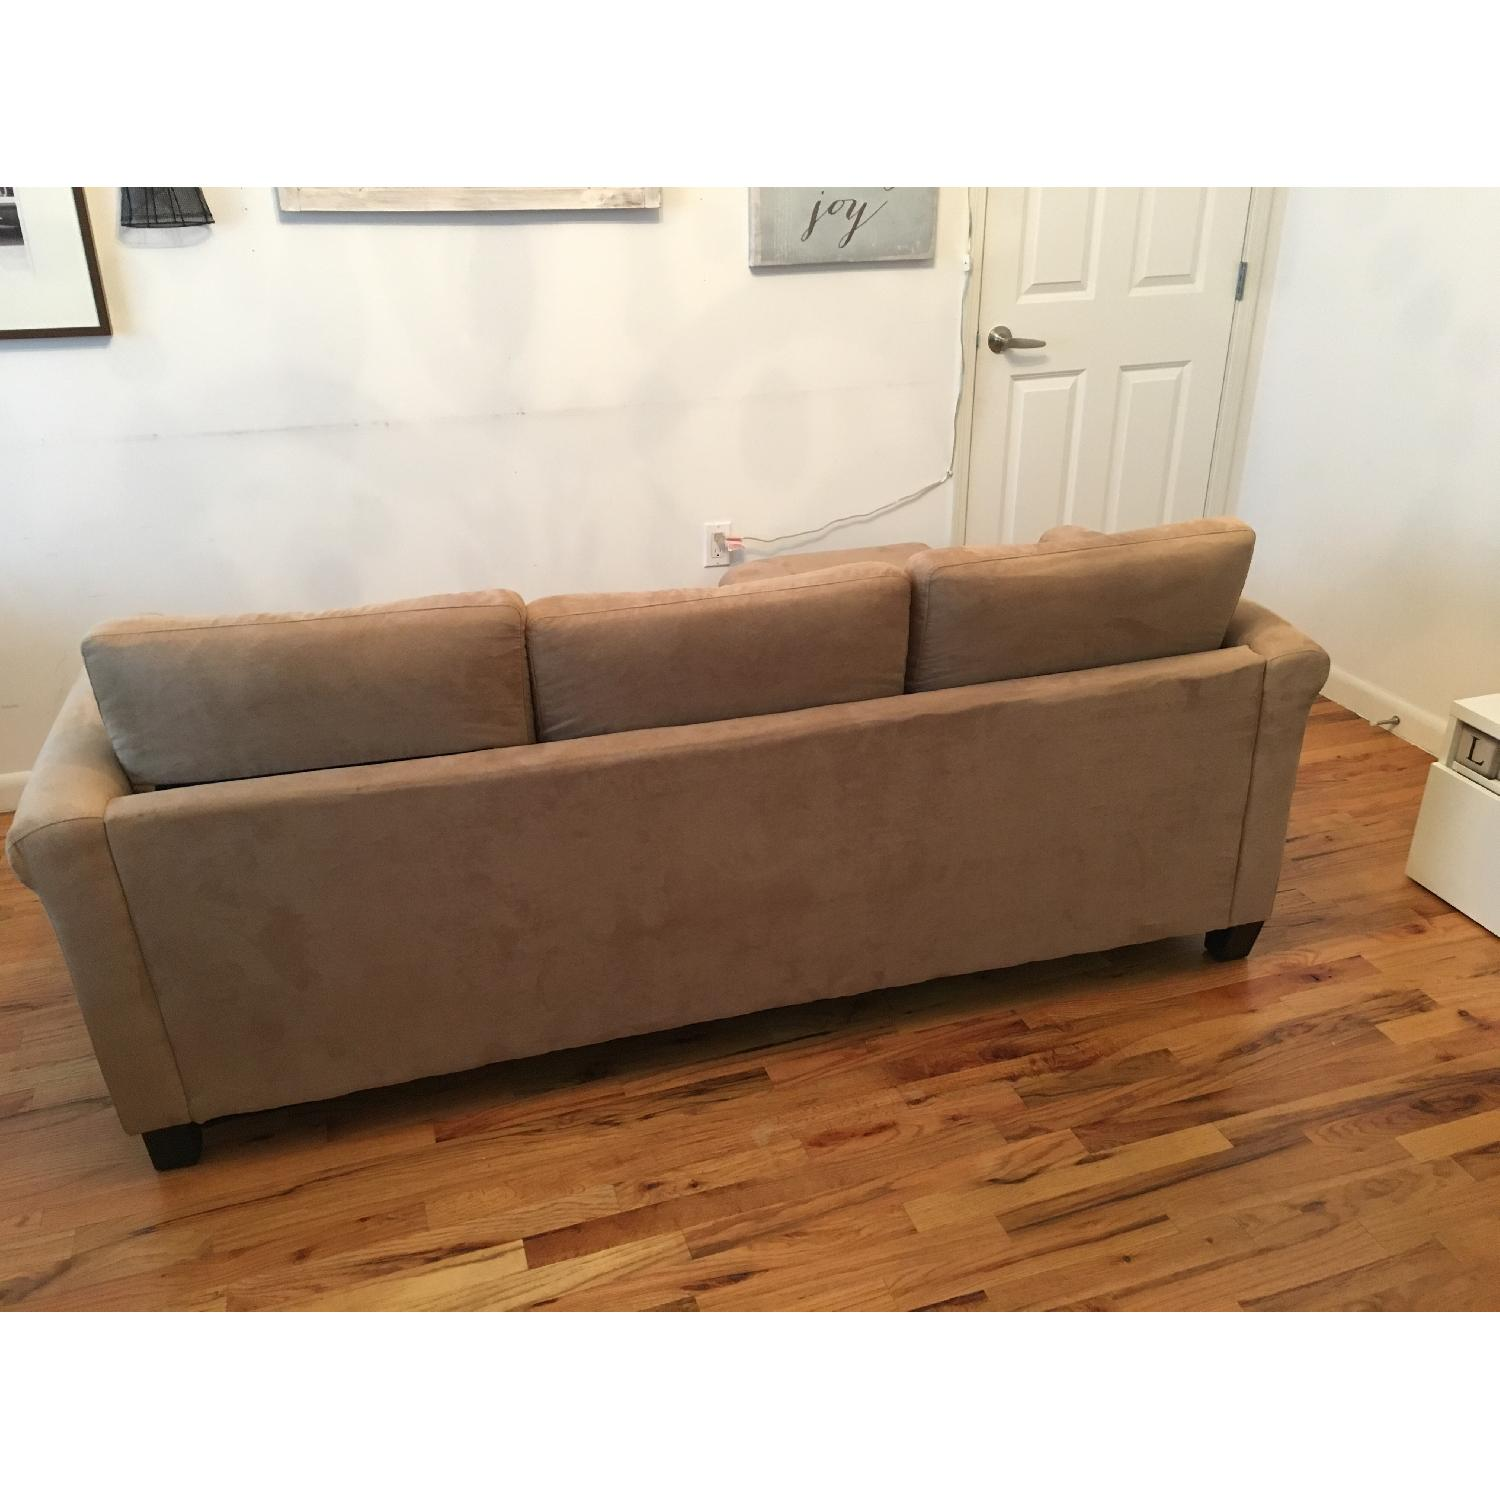 Beige Sectional Sofa - image-4